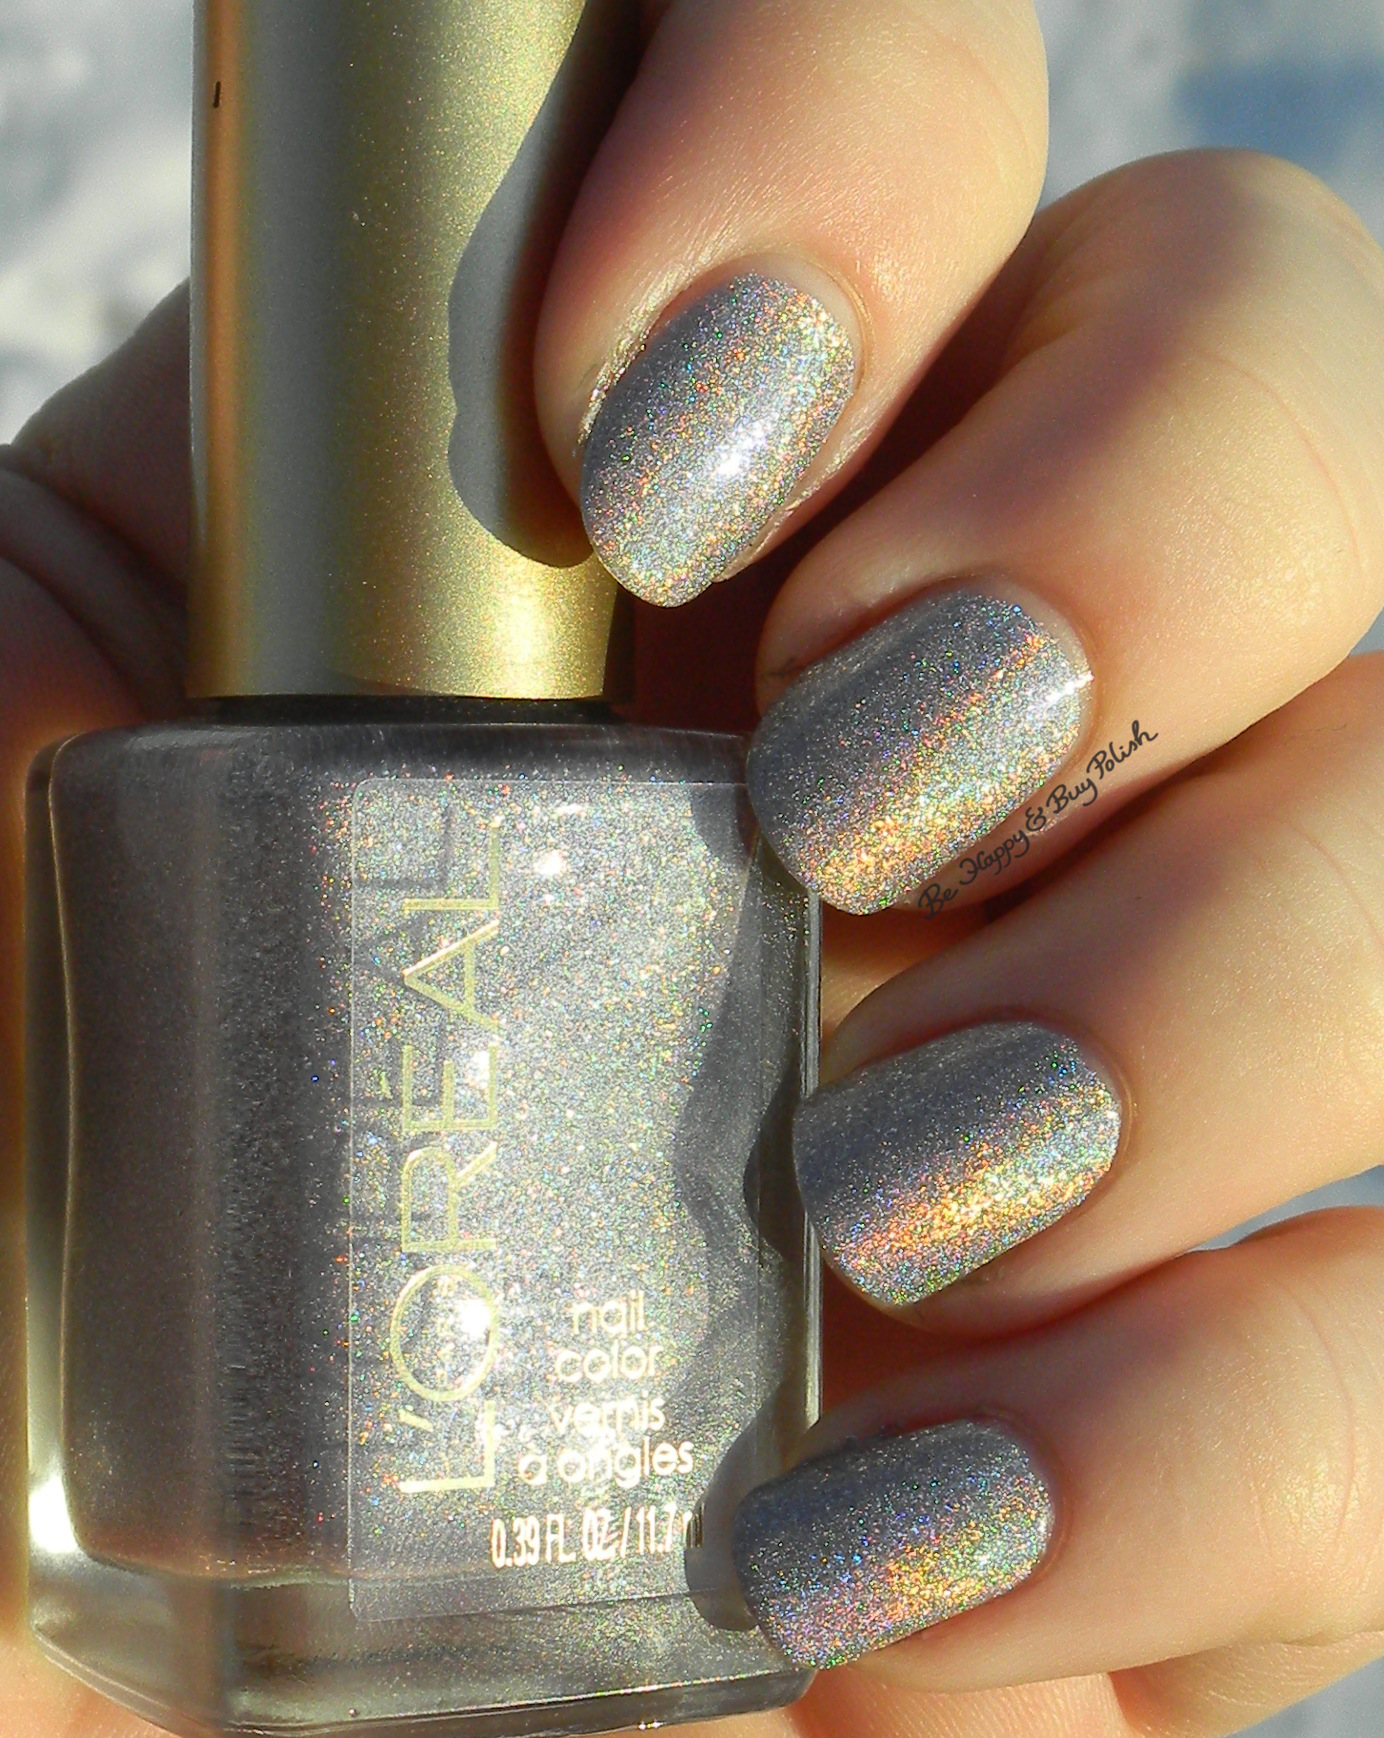 L'Oreal Dark Sides of Grey nail polishes swatches + review ...